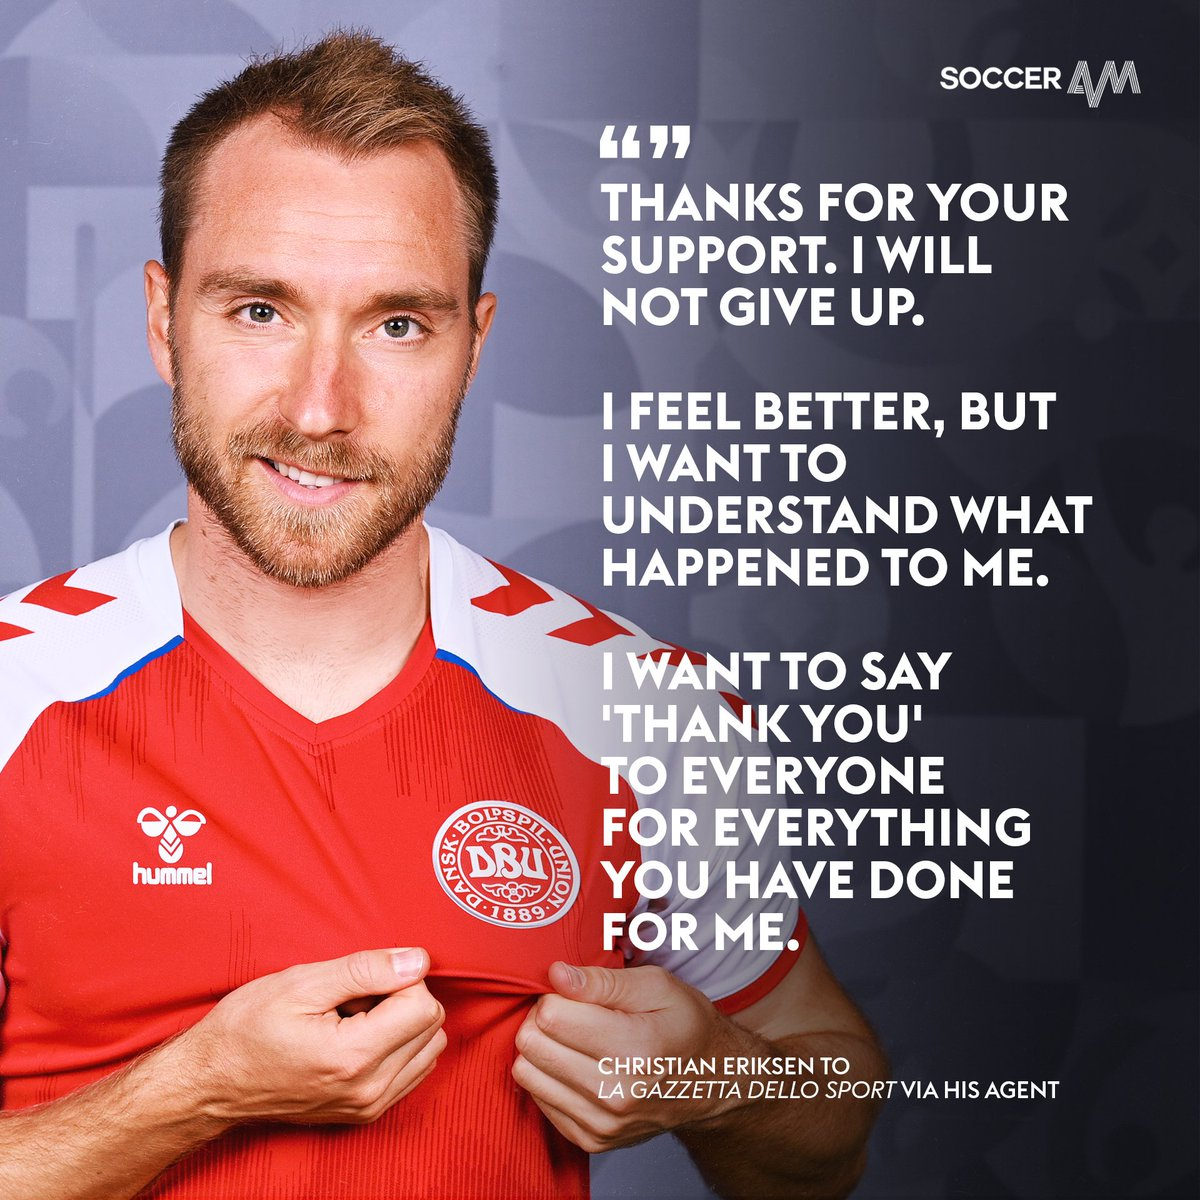 A message from Christian Eriksen ❤️❤️❤️ https://t.co/IbHu1gTiJM